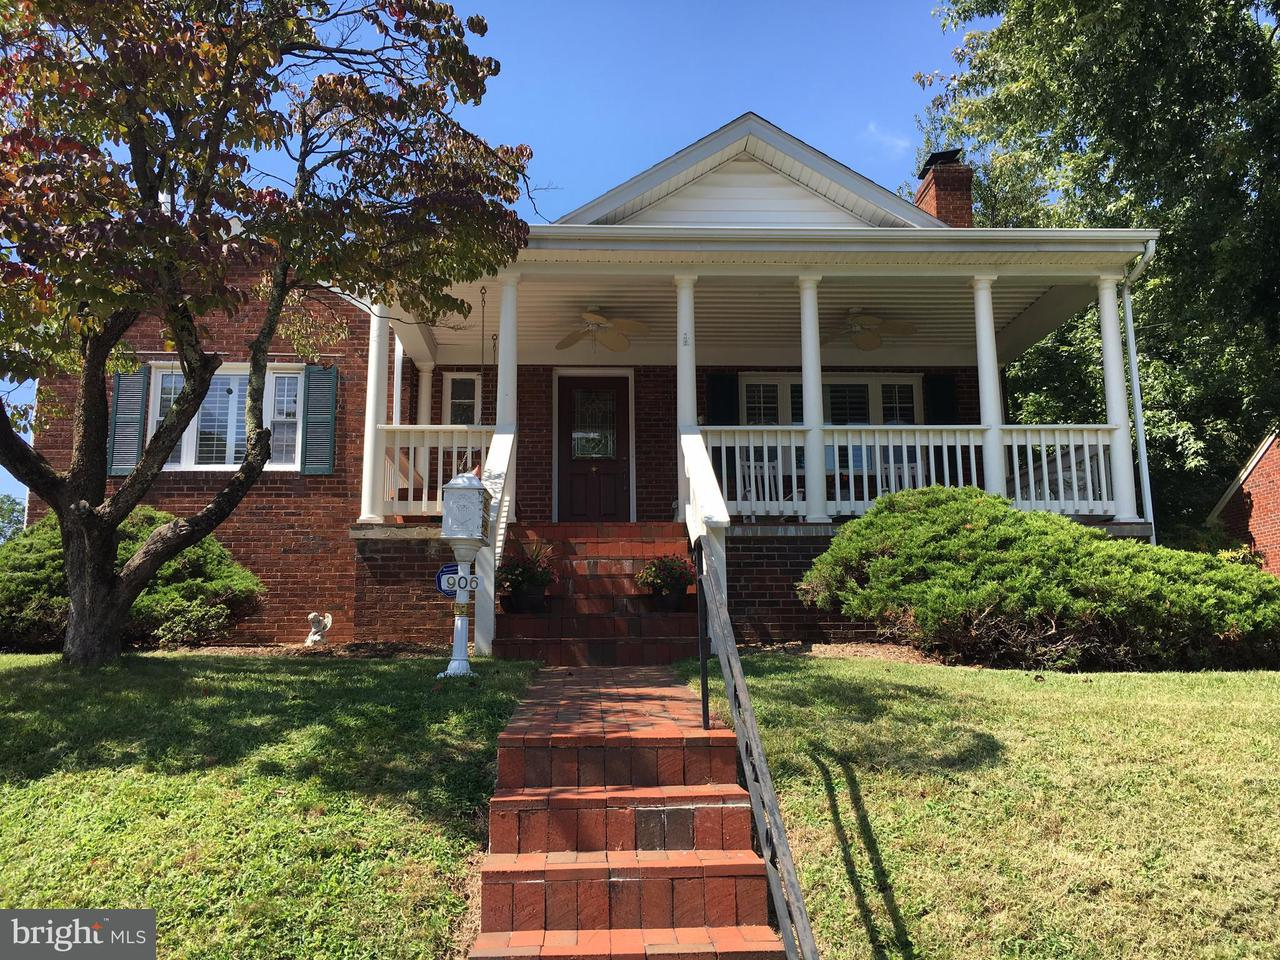 Single Family Home for Sale at 906 MONTANA ST N 906 MONTANA ST N Arlington, Virginia 22205 United States